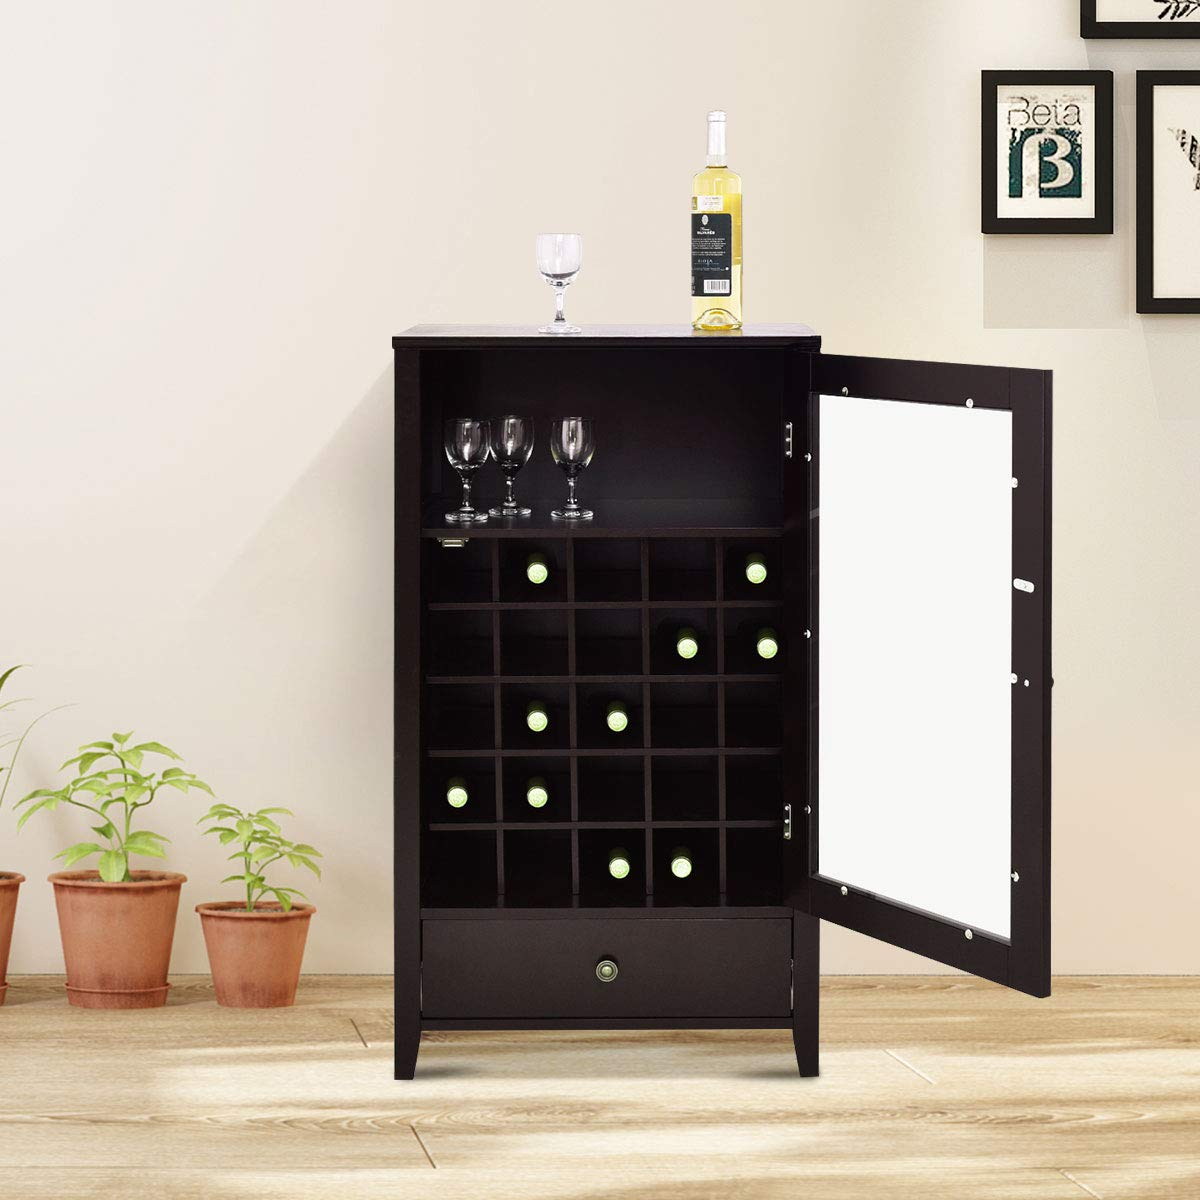 Giantex Wood Wine Cabinet Storage Home Shelf Wine Bottle Holder w/Drawer Brown